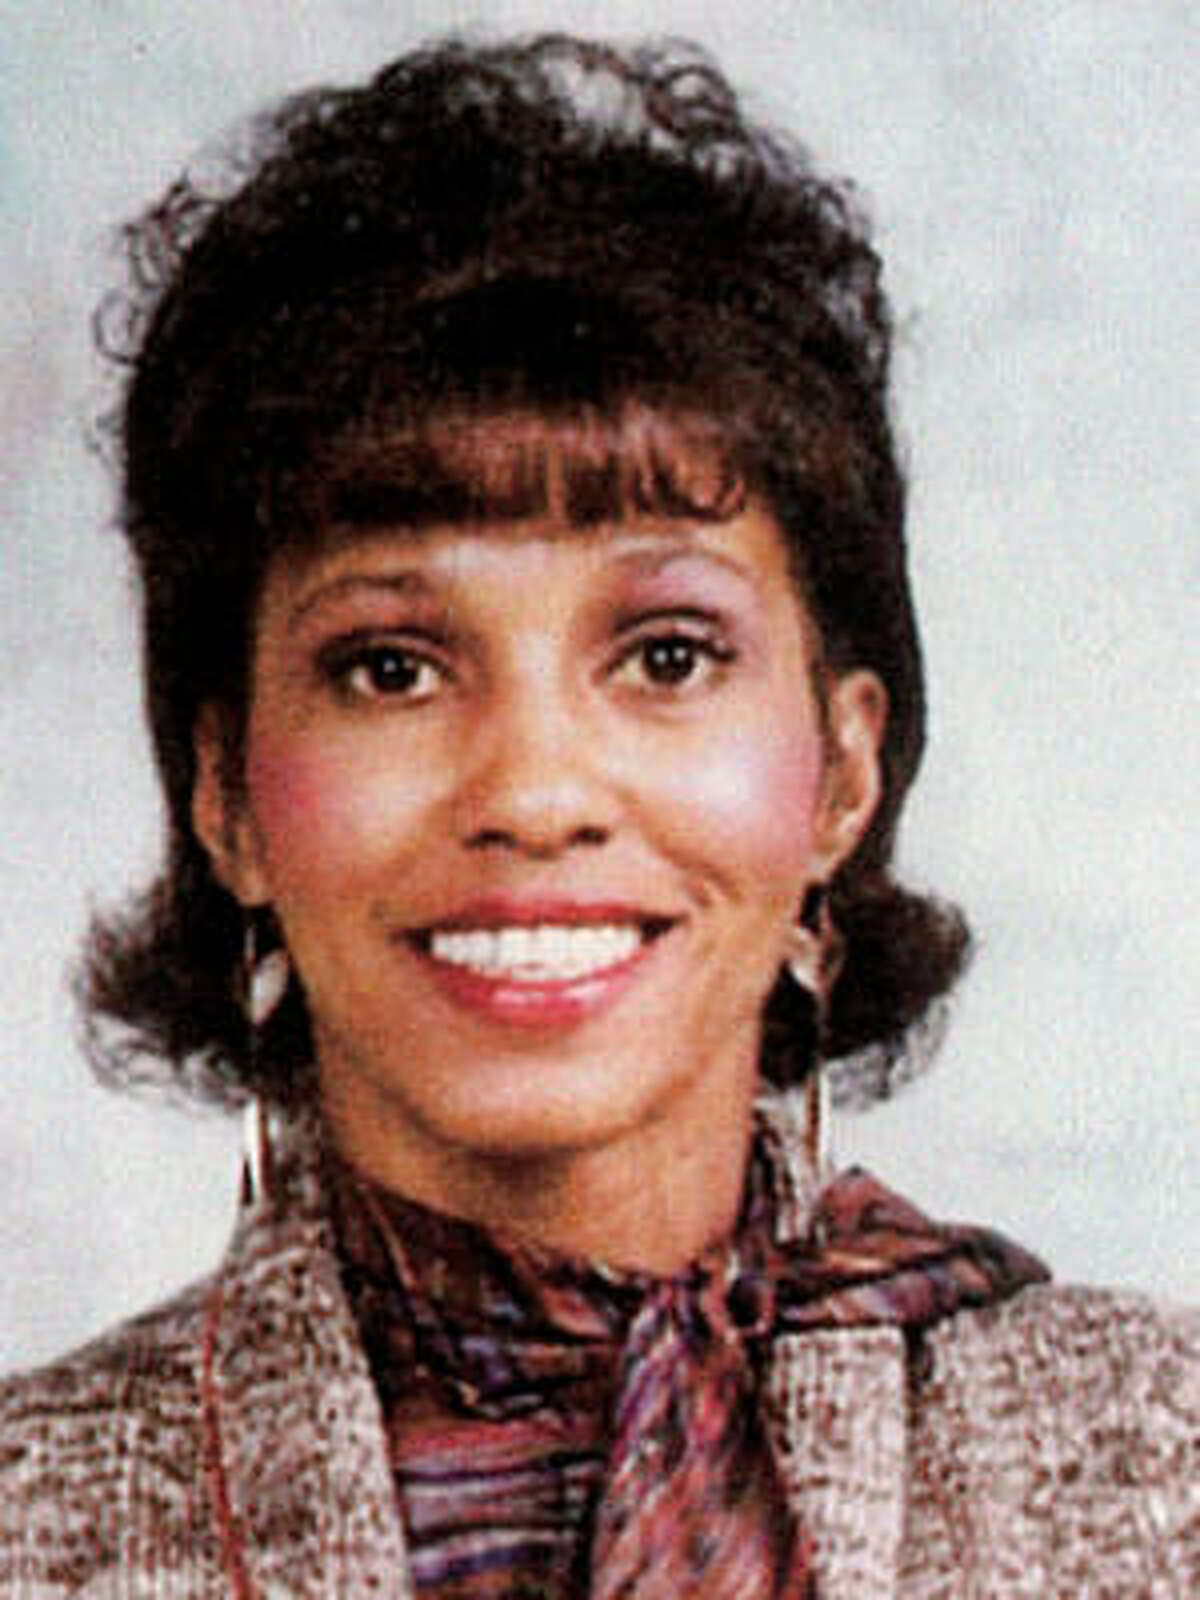 Retia Lafaye Long was found strangled on a stairway behind a church building.